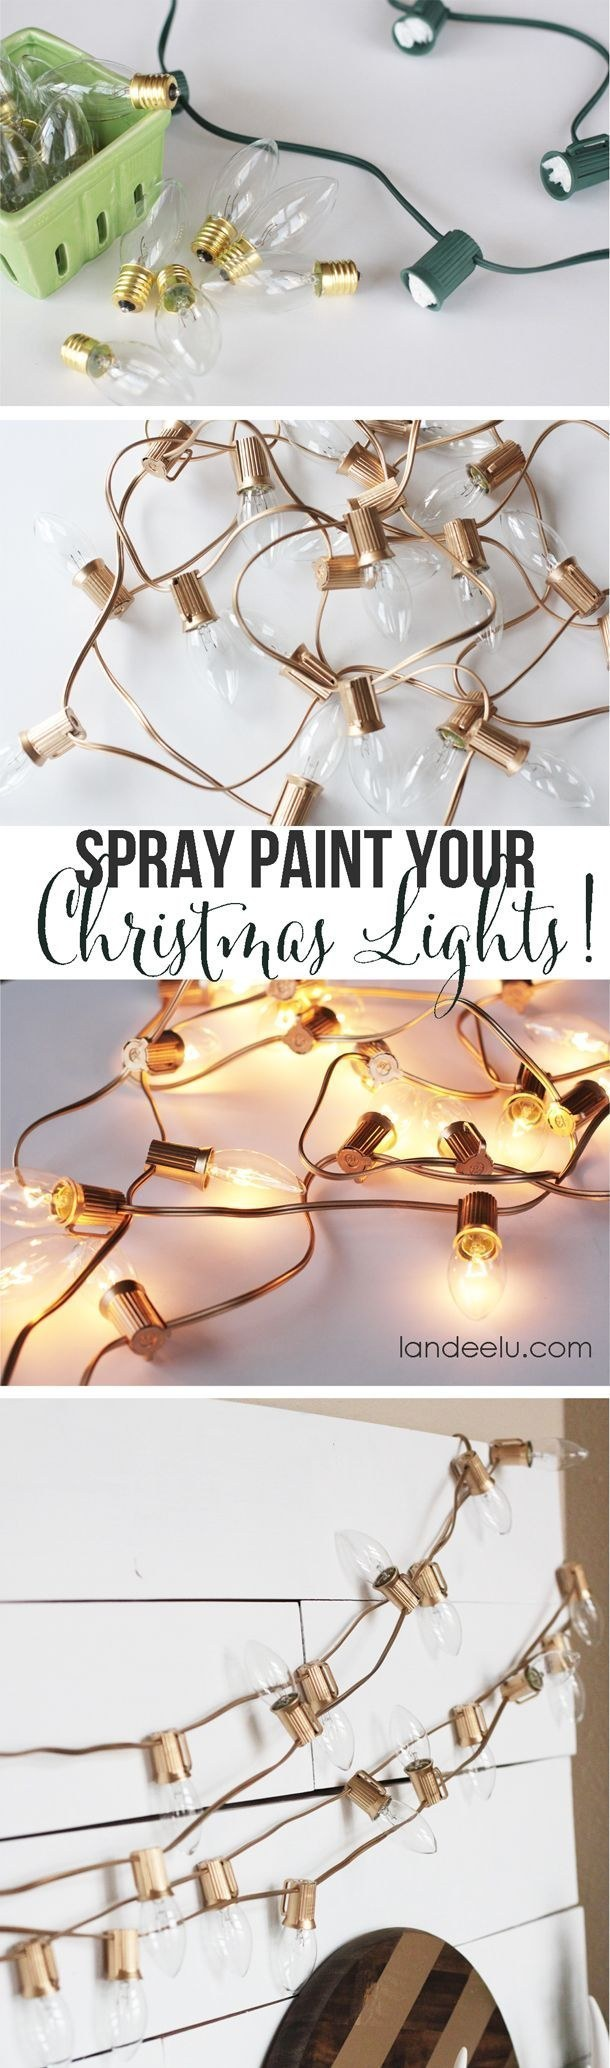 String Light DIY ideas for Cool Home Decor | Spray Painted Christmas Lights are Fun for Teens Room, Dorm, Apartment or Home #teencrafts #cheapcrafts #diylights